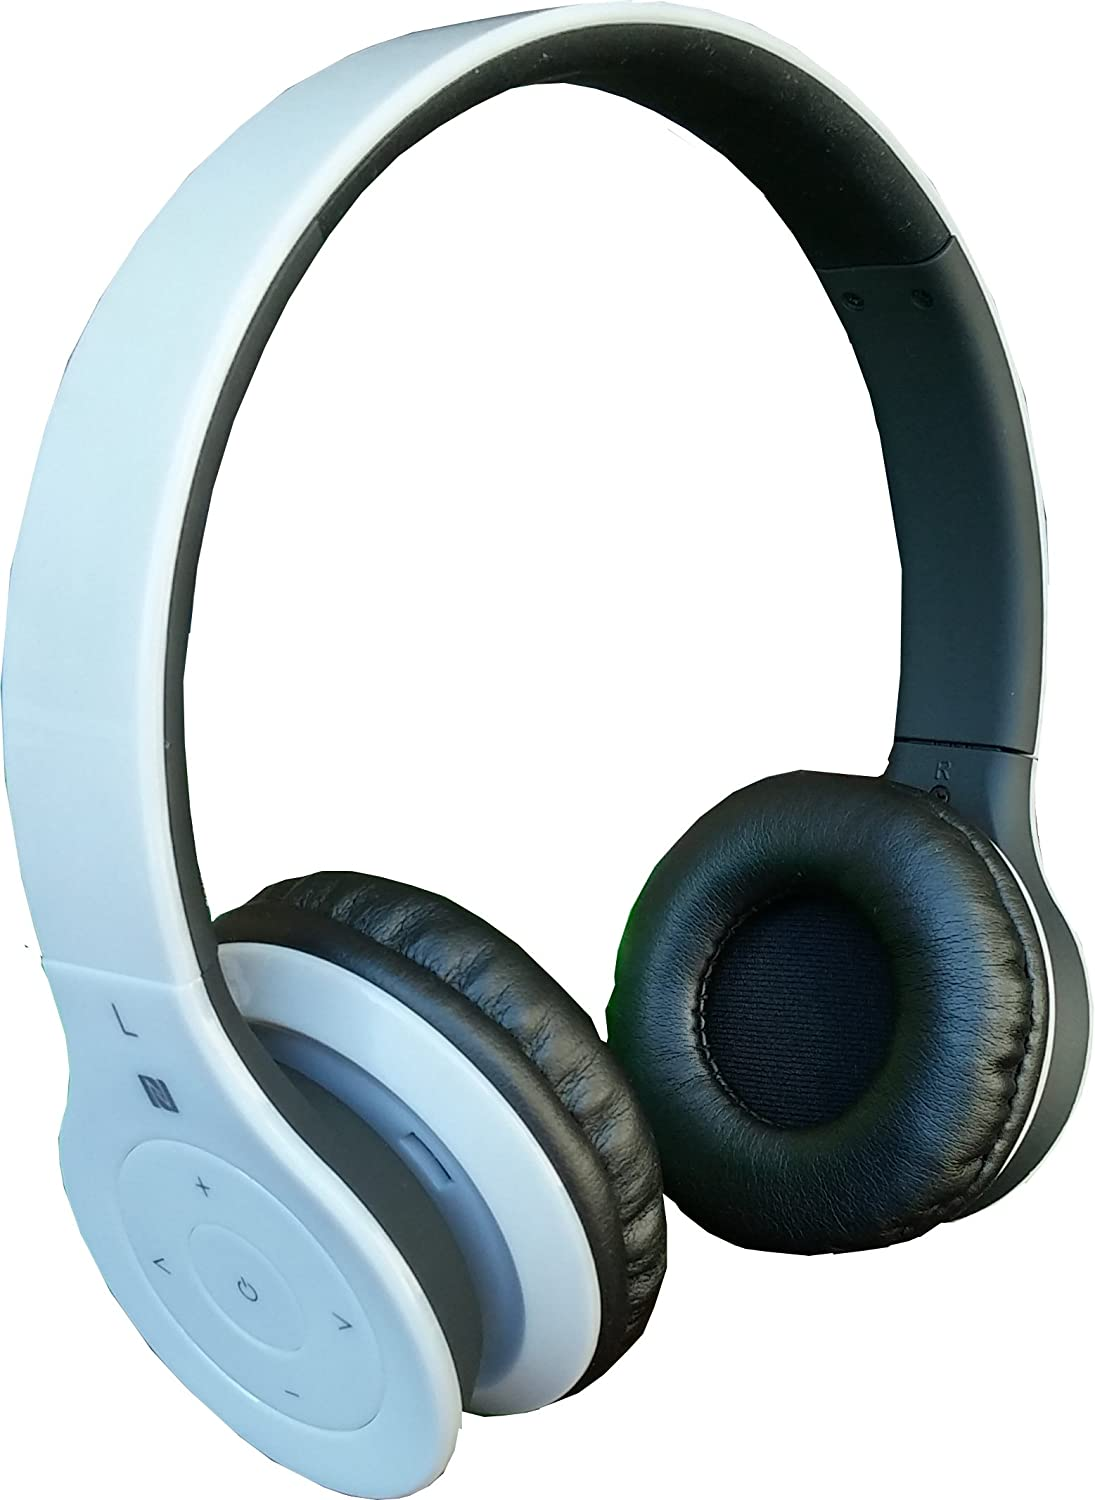 Alpha Digital BH-530-W Bluetooth Headphone with Soft Fit Ear Covers, Built-In Microphone, White